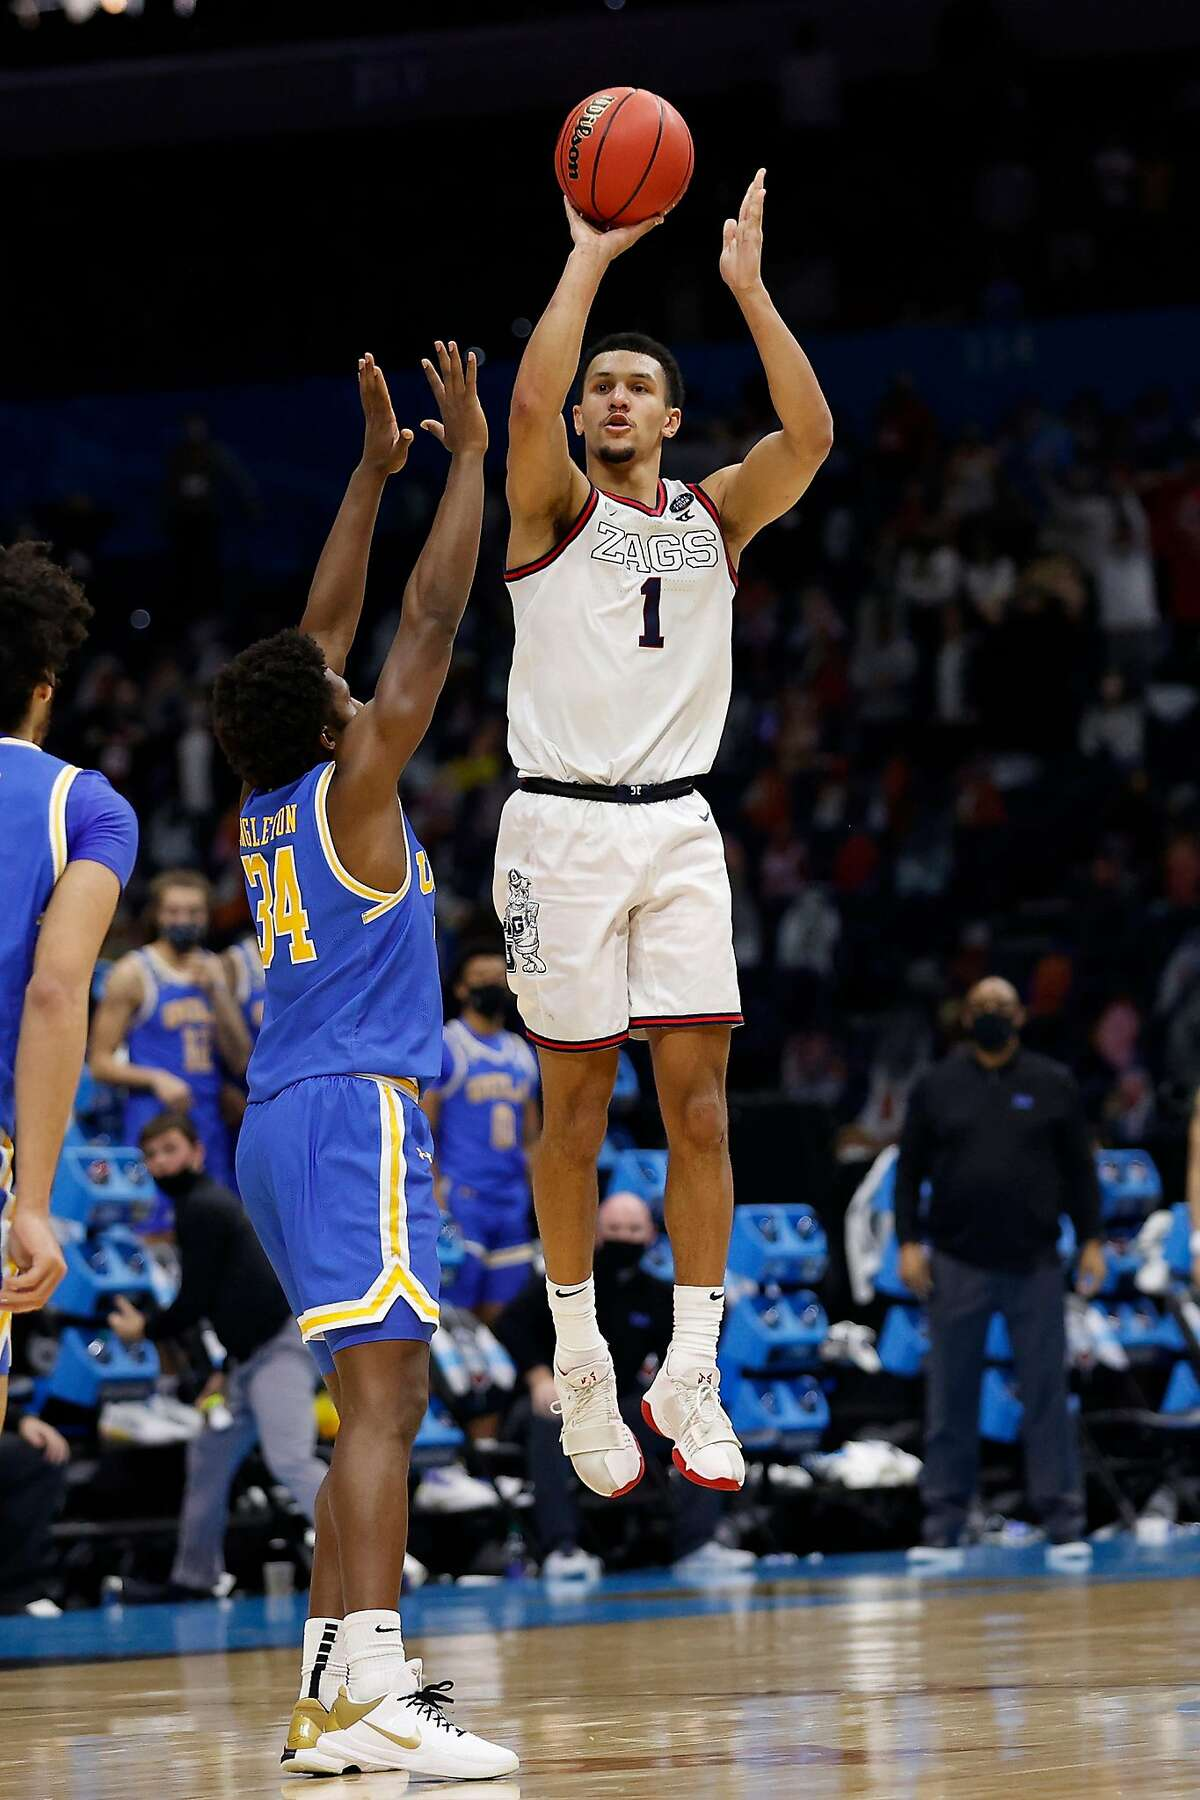 Gonzaga's Jalen Suggs (1) shoots the game-winning 3-point basket in overtime to defeat UCLA, 93-90, in the NCAA Tournament Final Four semifinals at Lucas Oil Stadium in Indianapolis on Saturday.